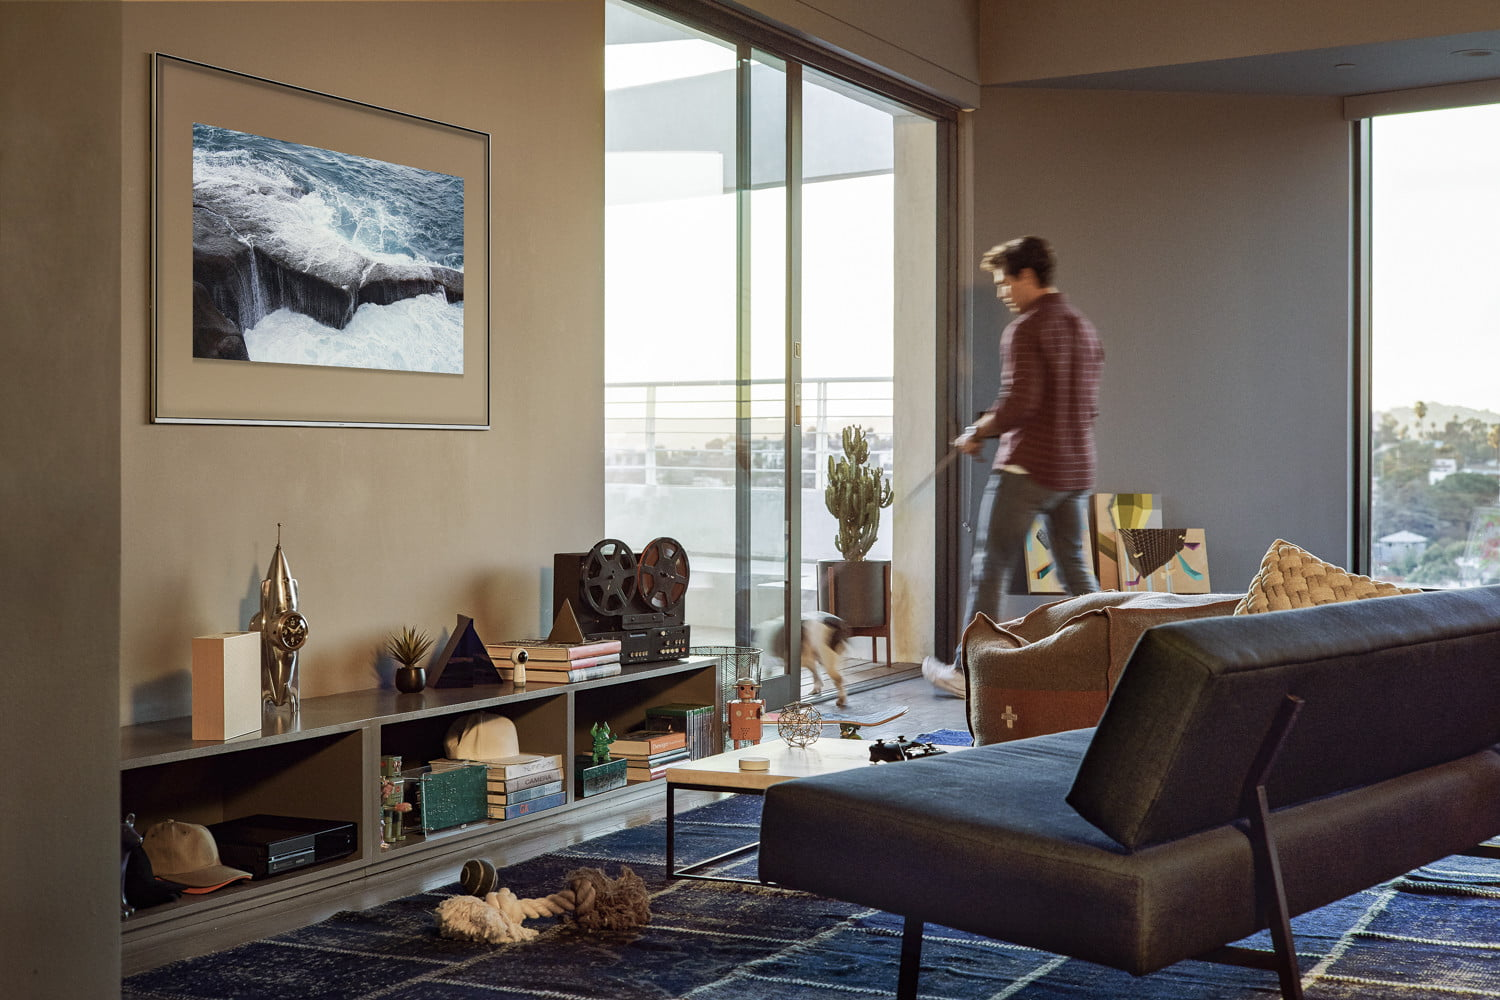 Samsung 2018 QLED TV Lineup | Features, Specs, Price